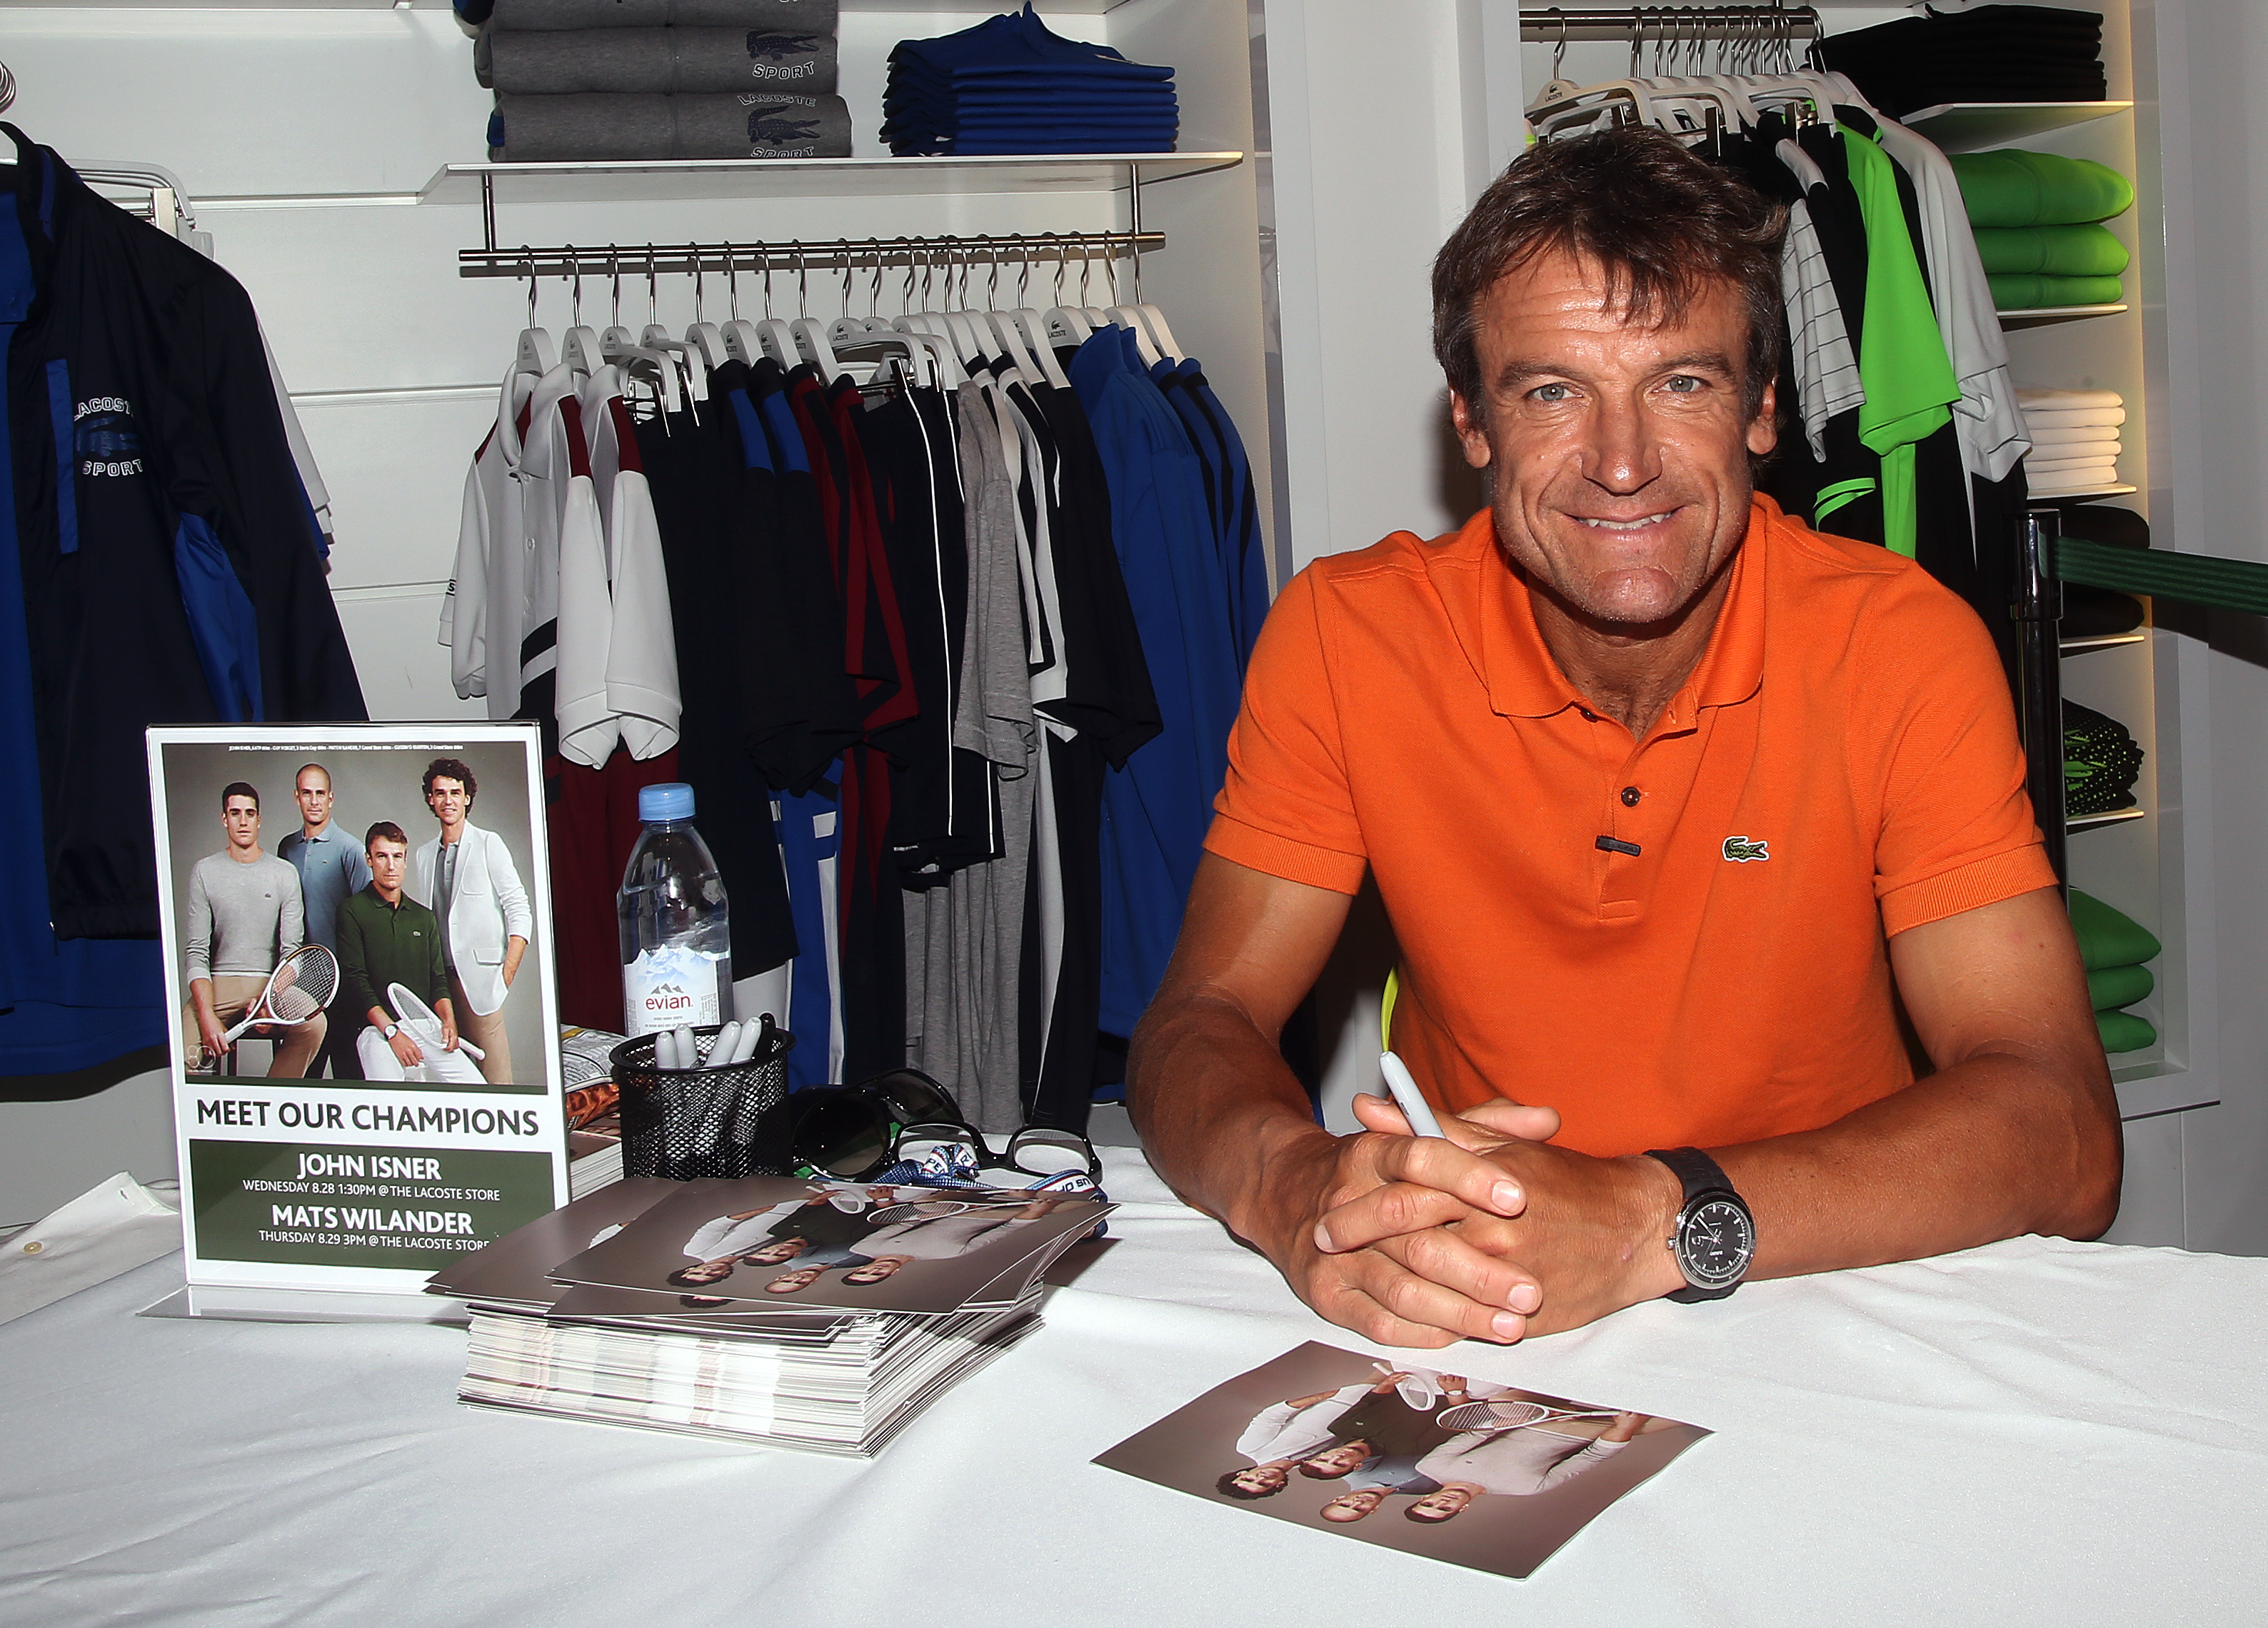 Charitybuzz Play Tennis with Mats Wilander and 2 VIP Tickets to 1